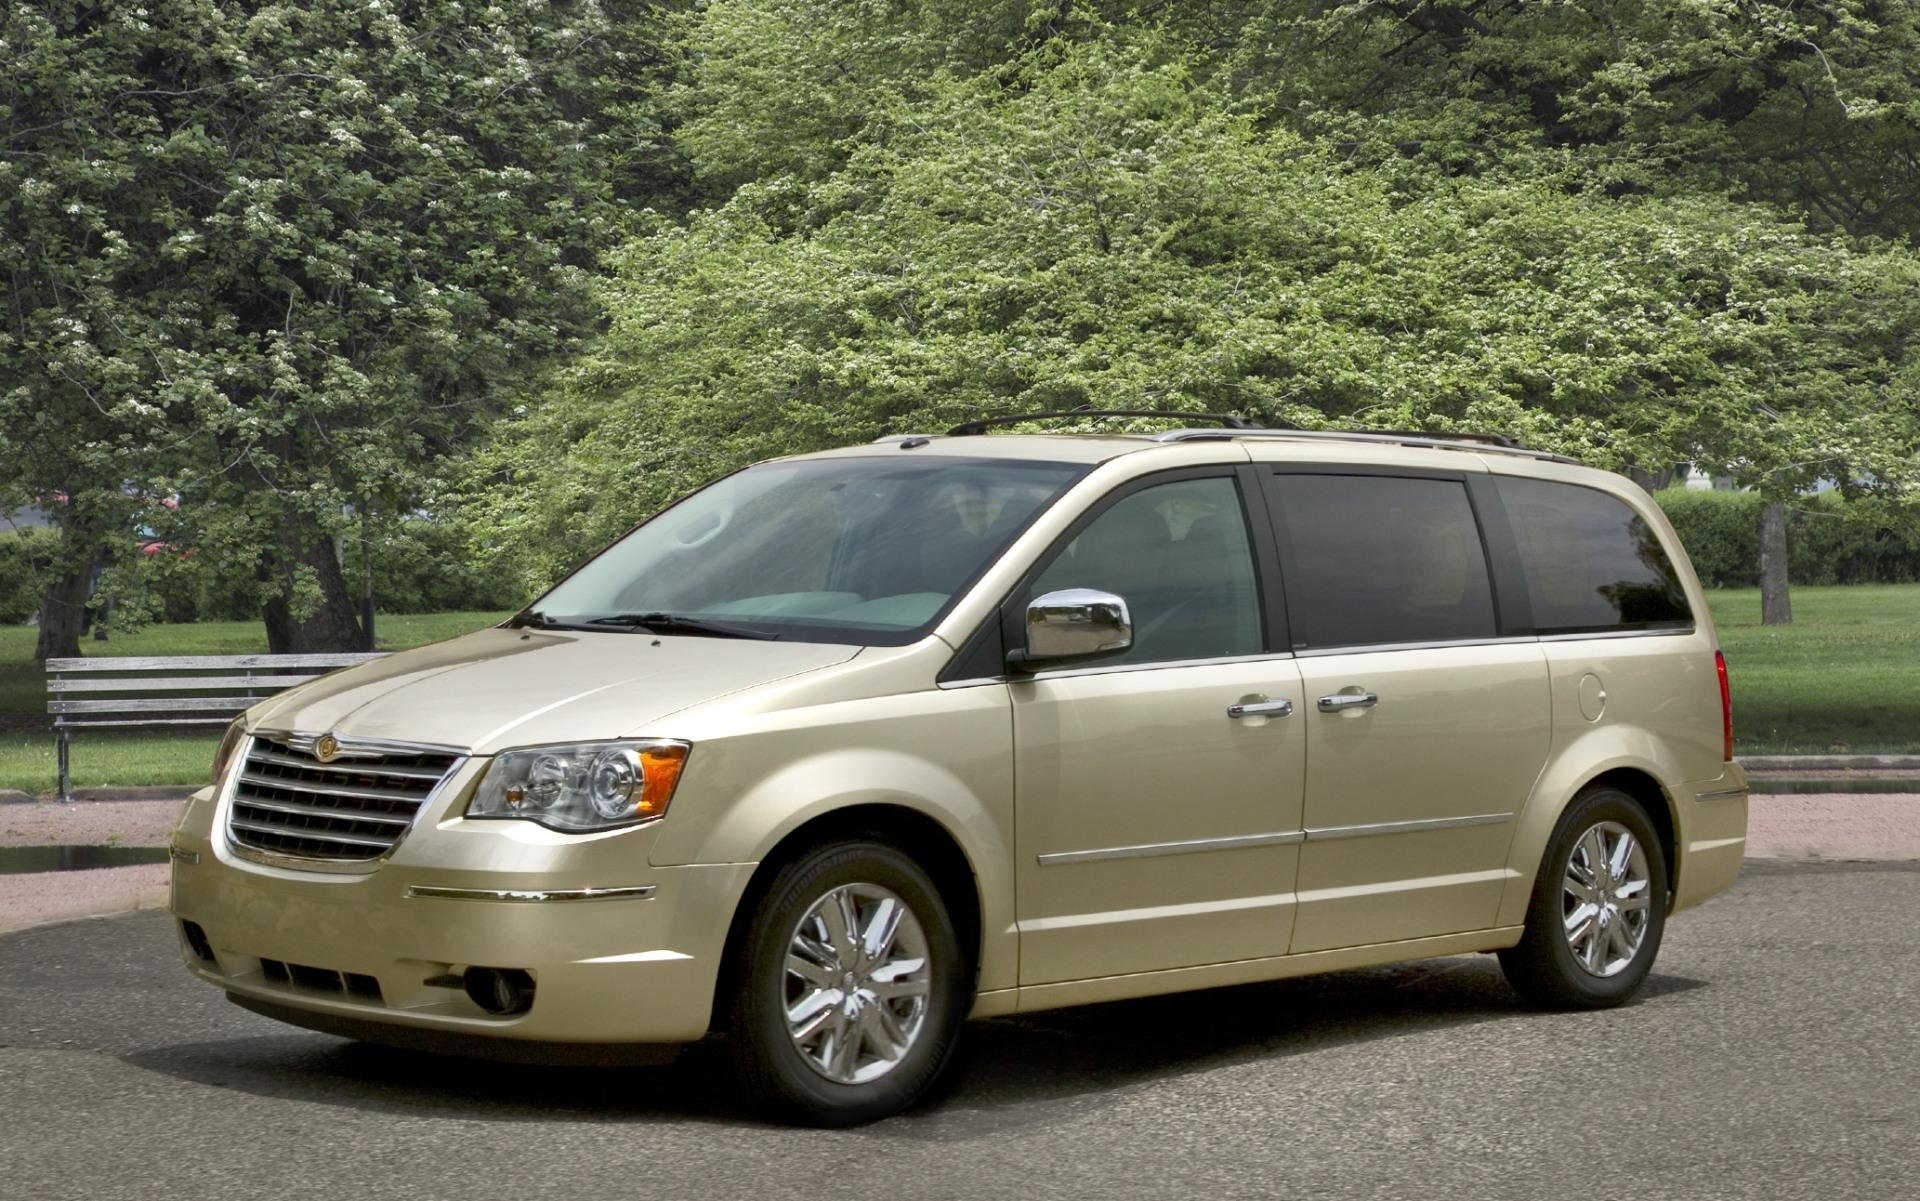 2010 Chrysler Town & Country - conceptcarz.com